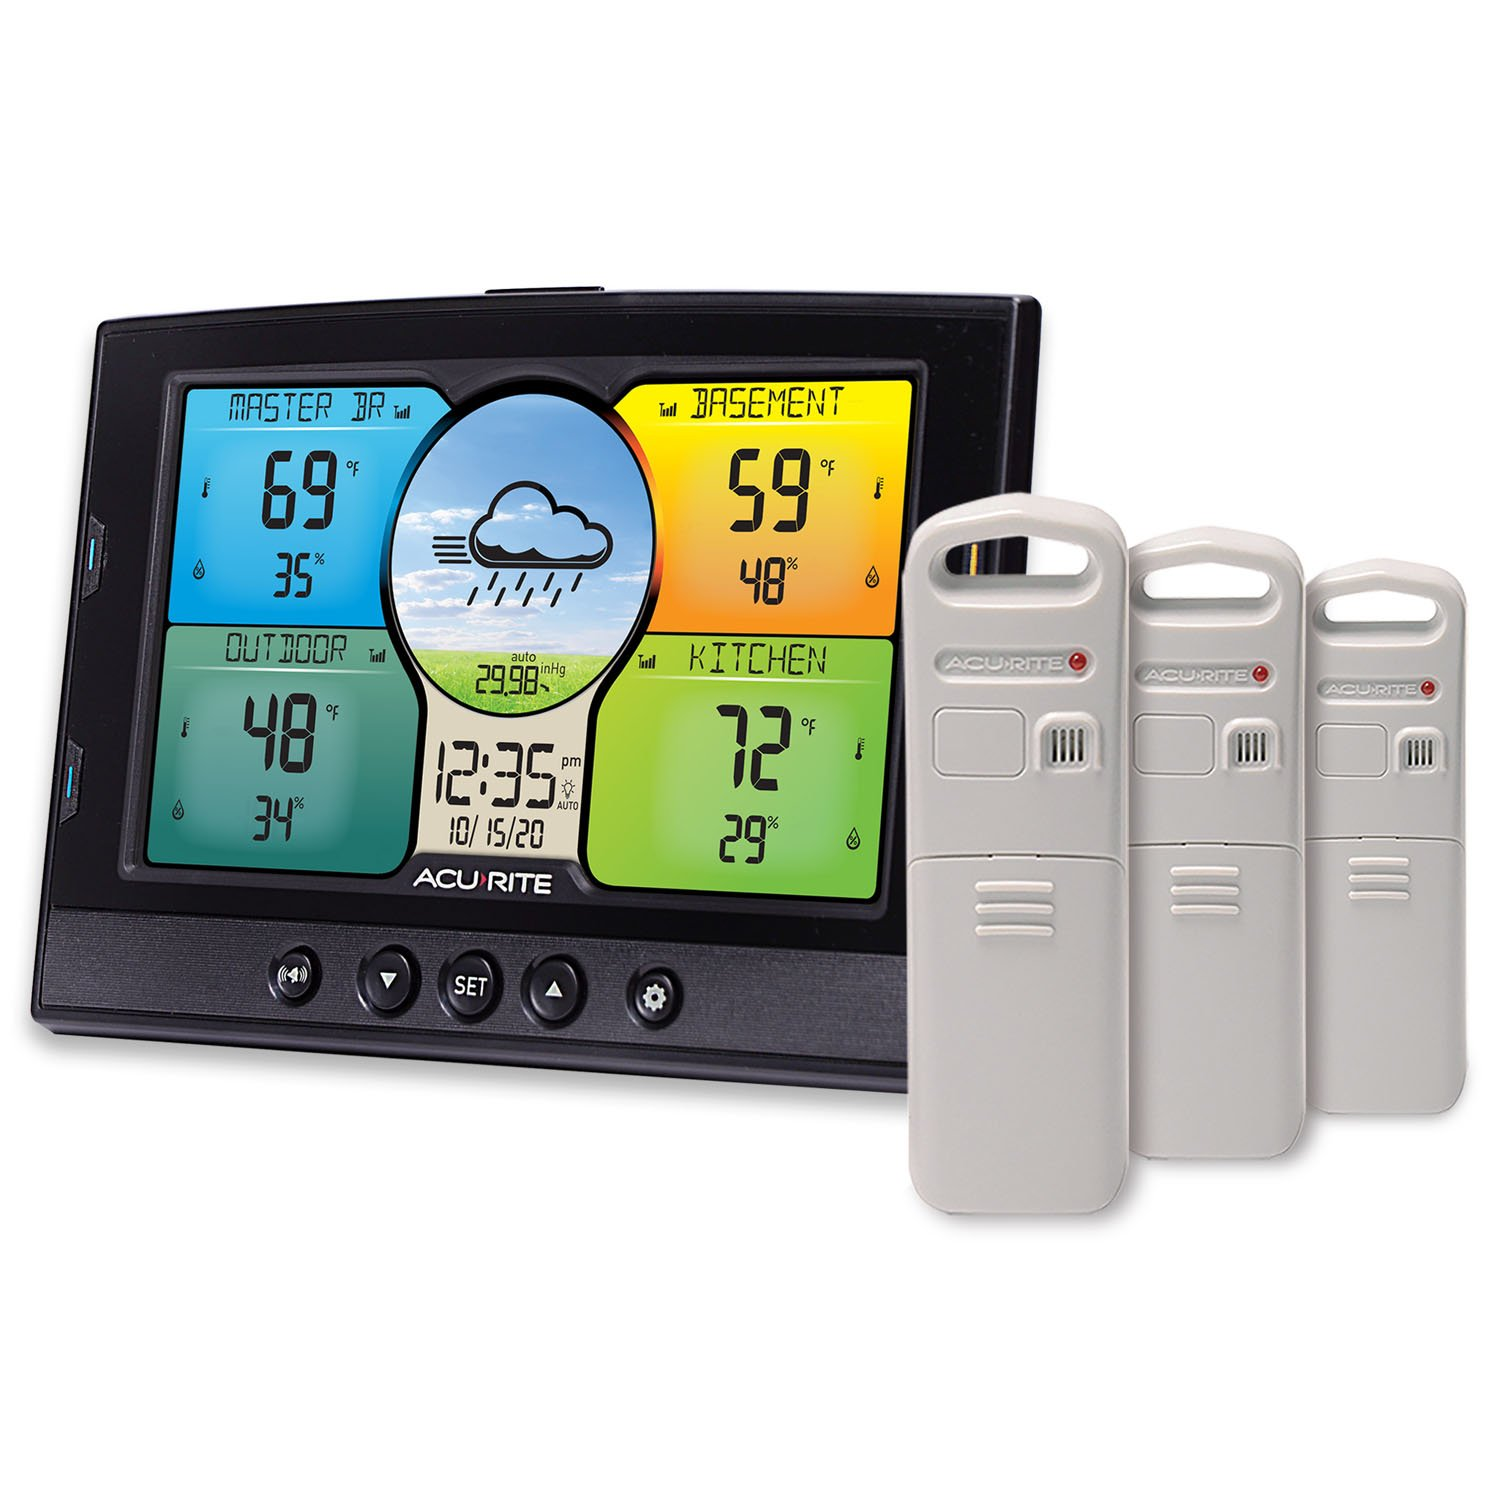 AcuRite 02082M Home Temperature & Humidity Station with 3 Indoor/Outdoor Sensors